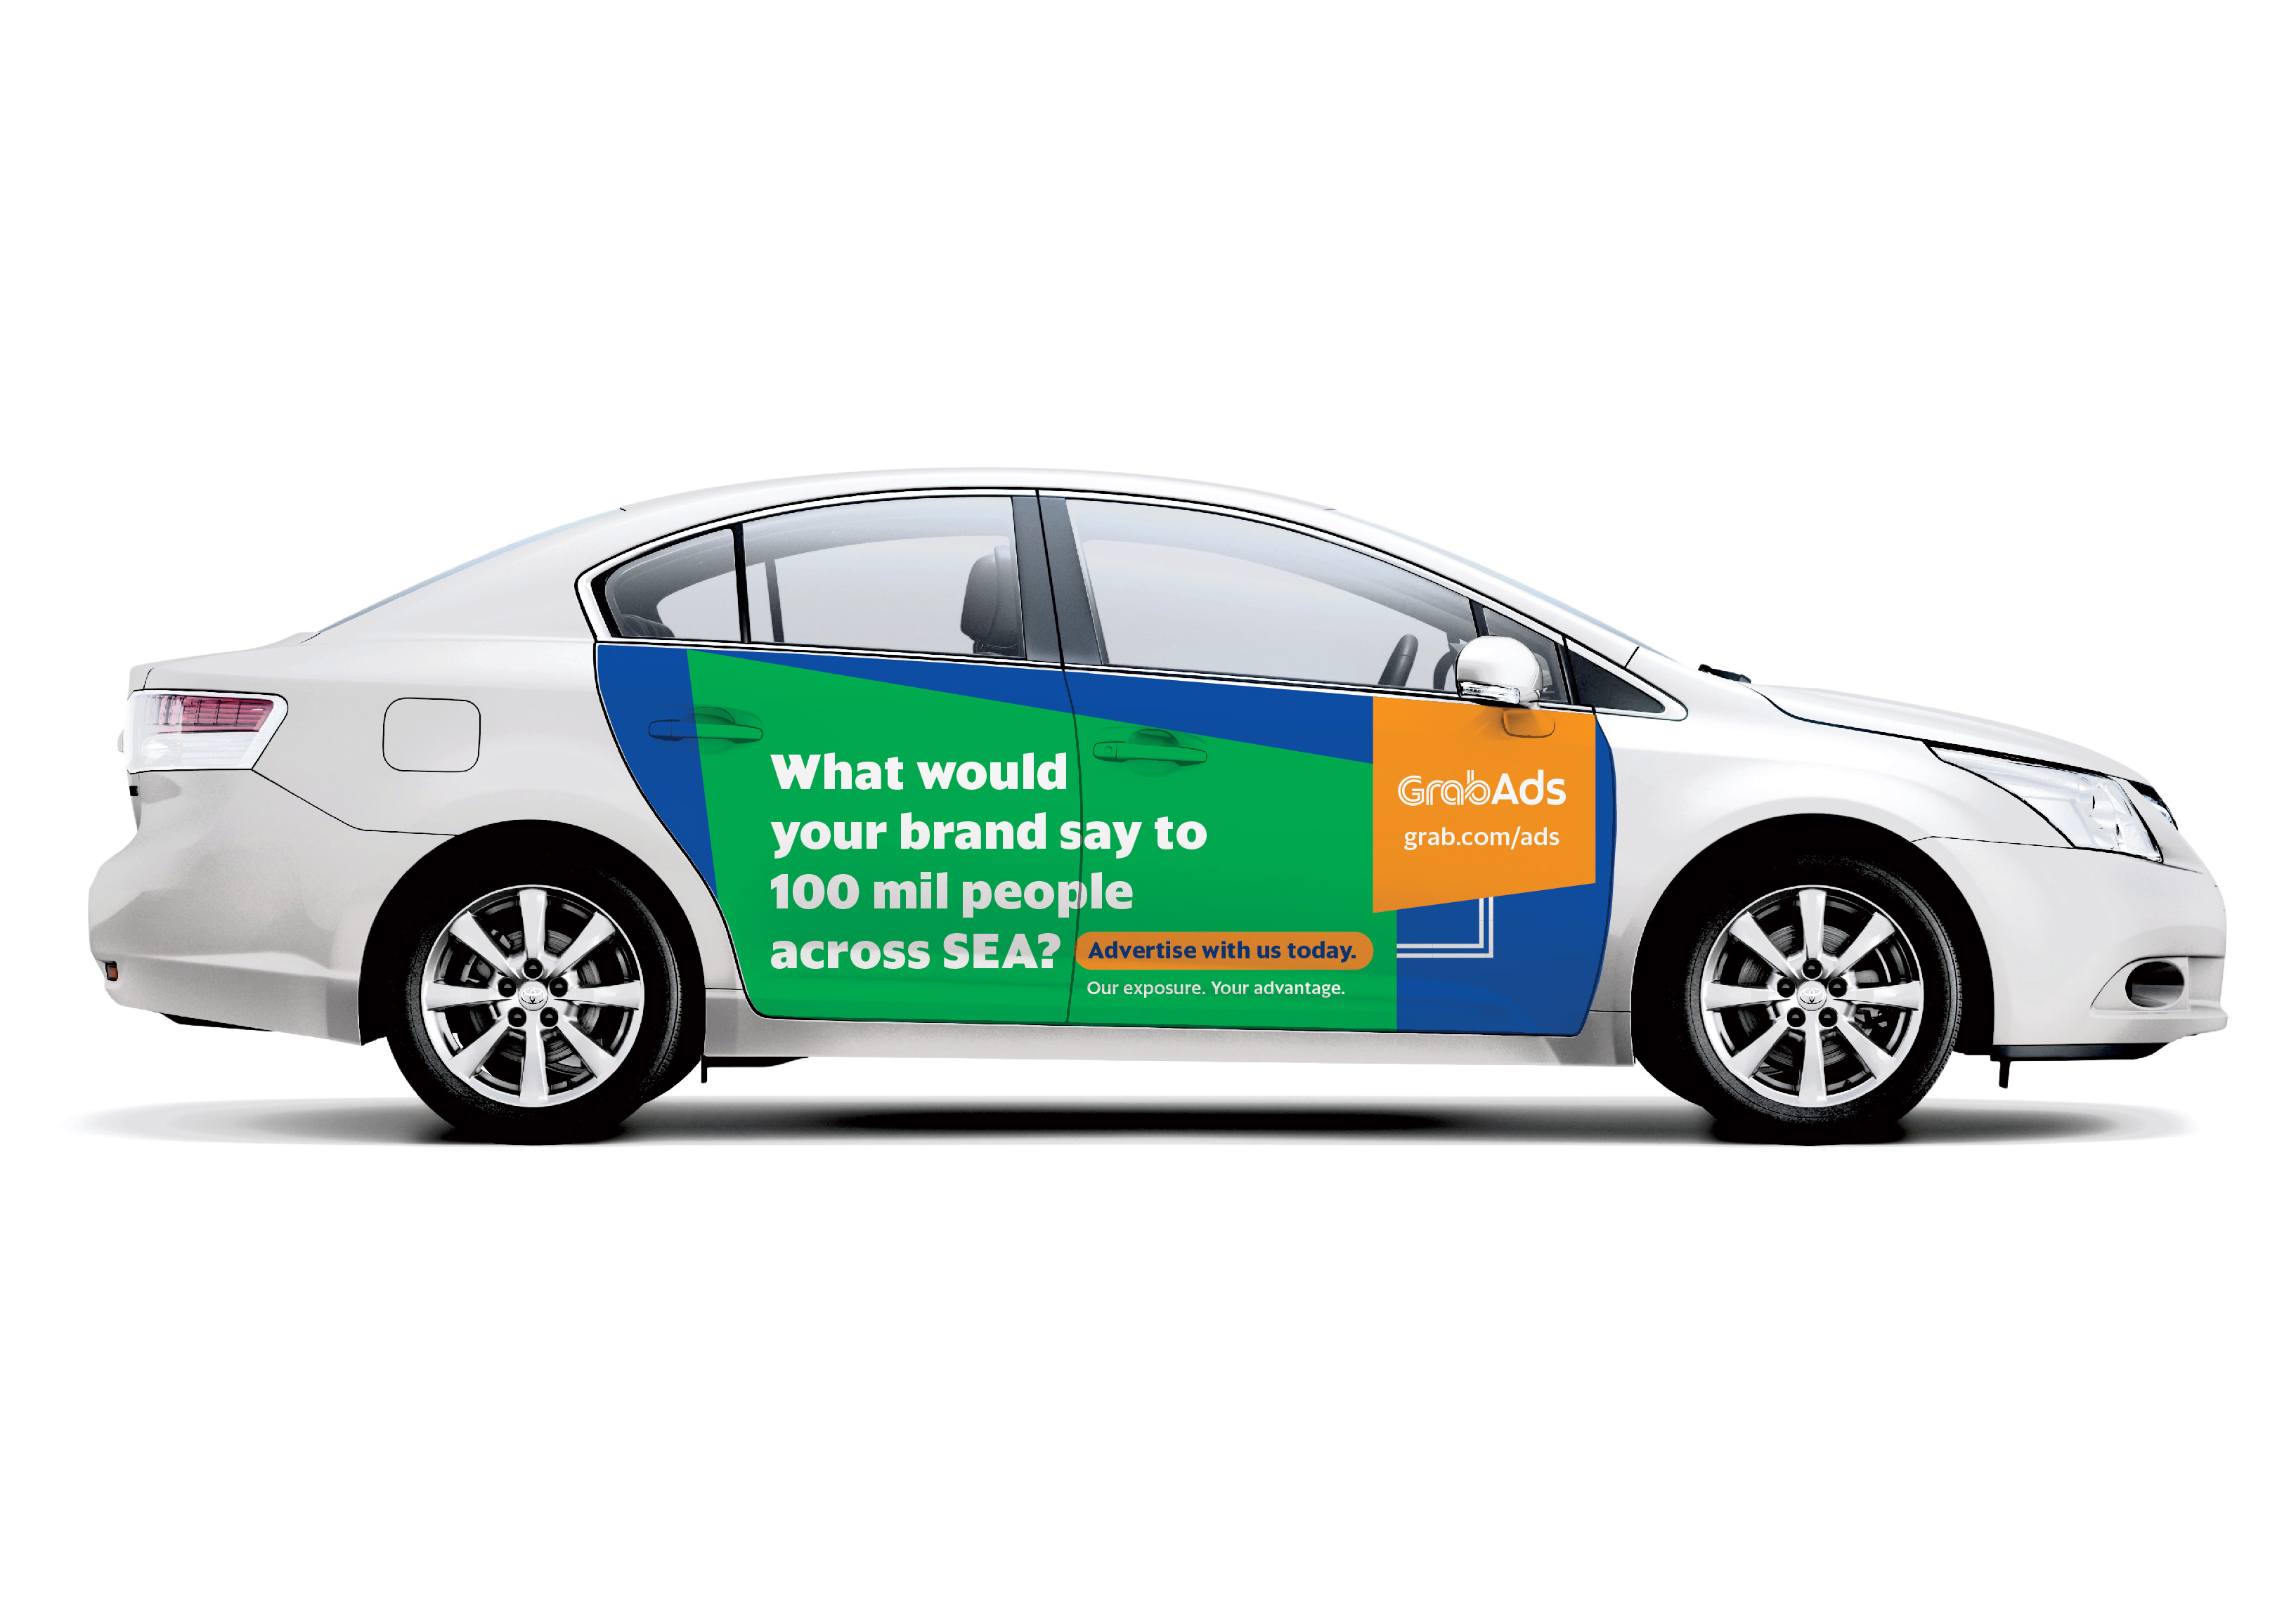 Corporate Car Online: Grab Launches GrabAds Online-to-Offline Advertising